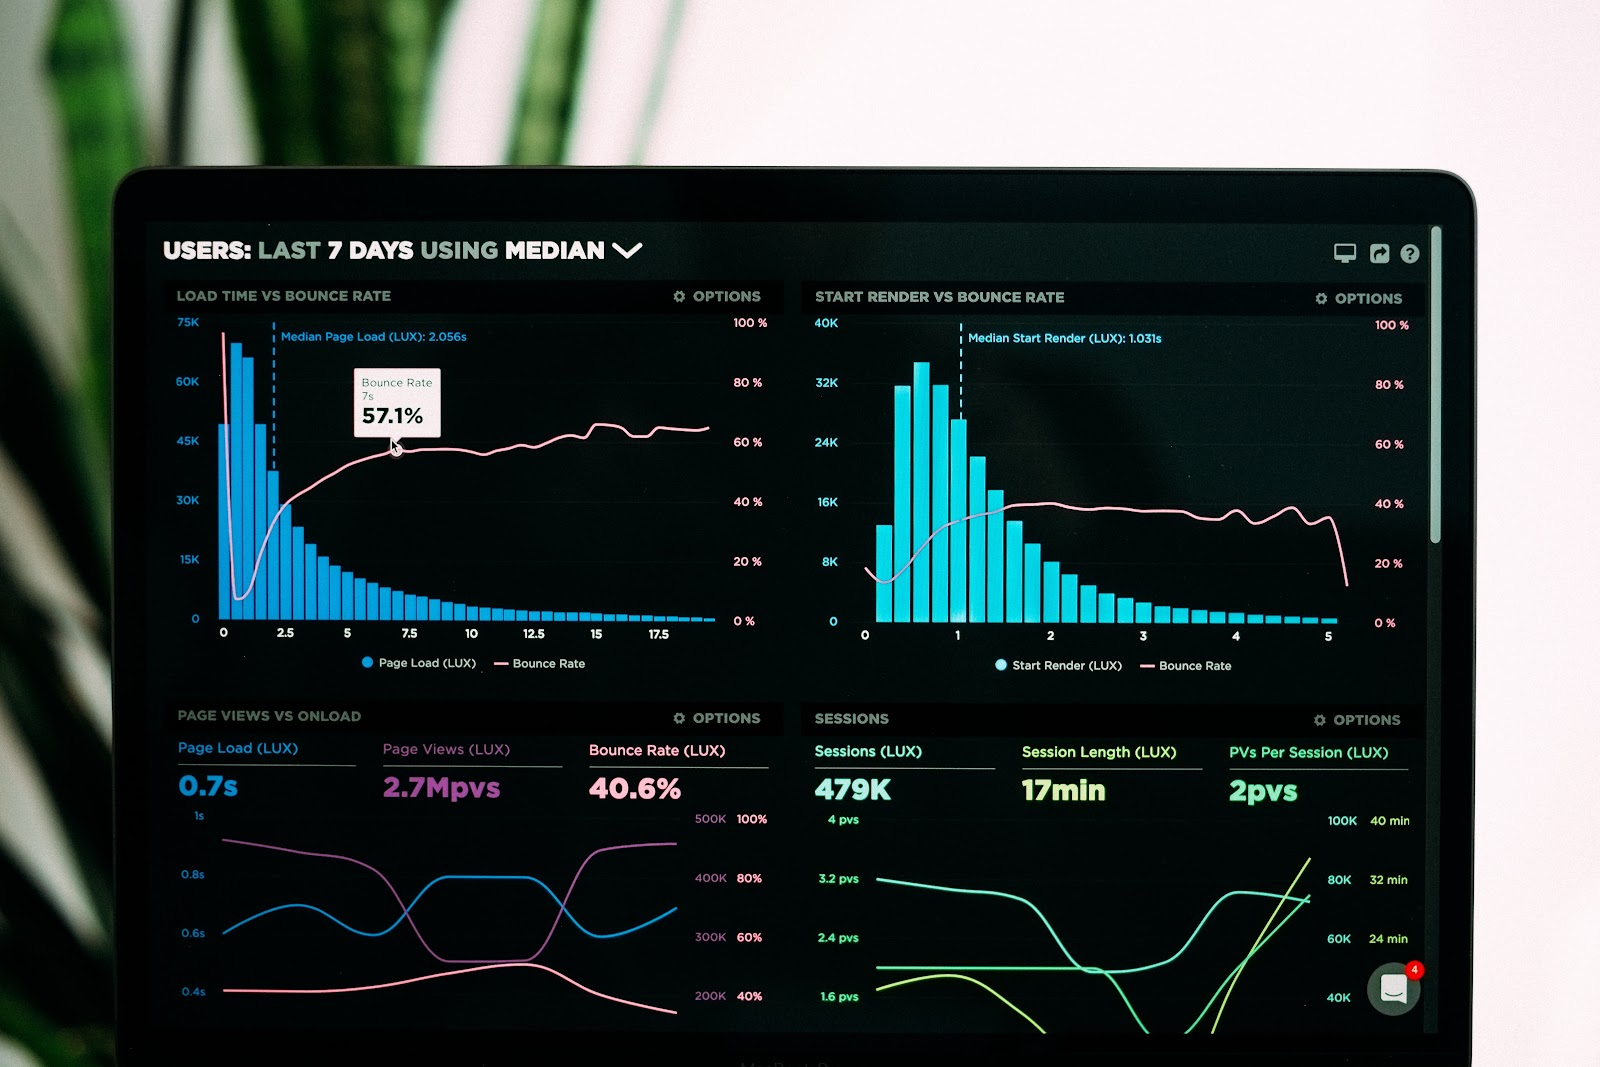 website speed and sessions analytics